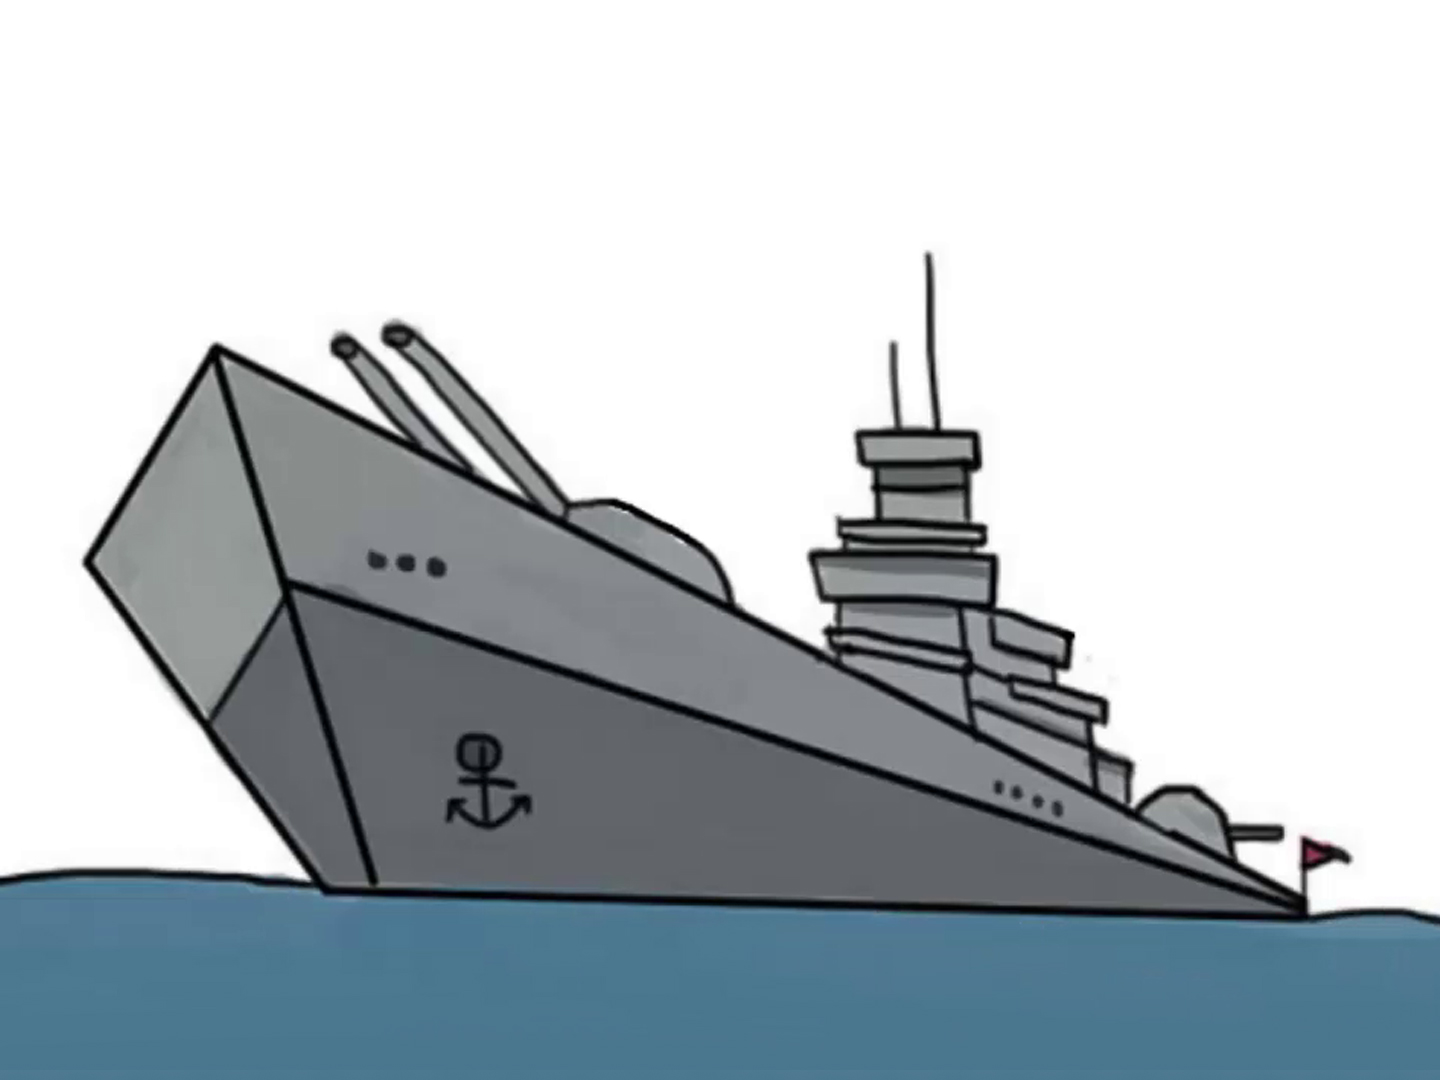 Battleship clipart broken ship. How to draw a